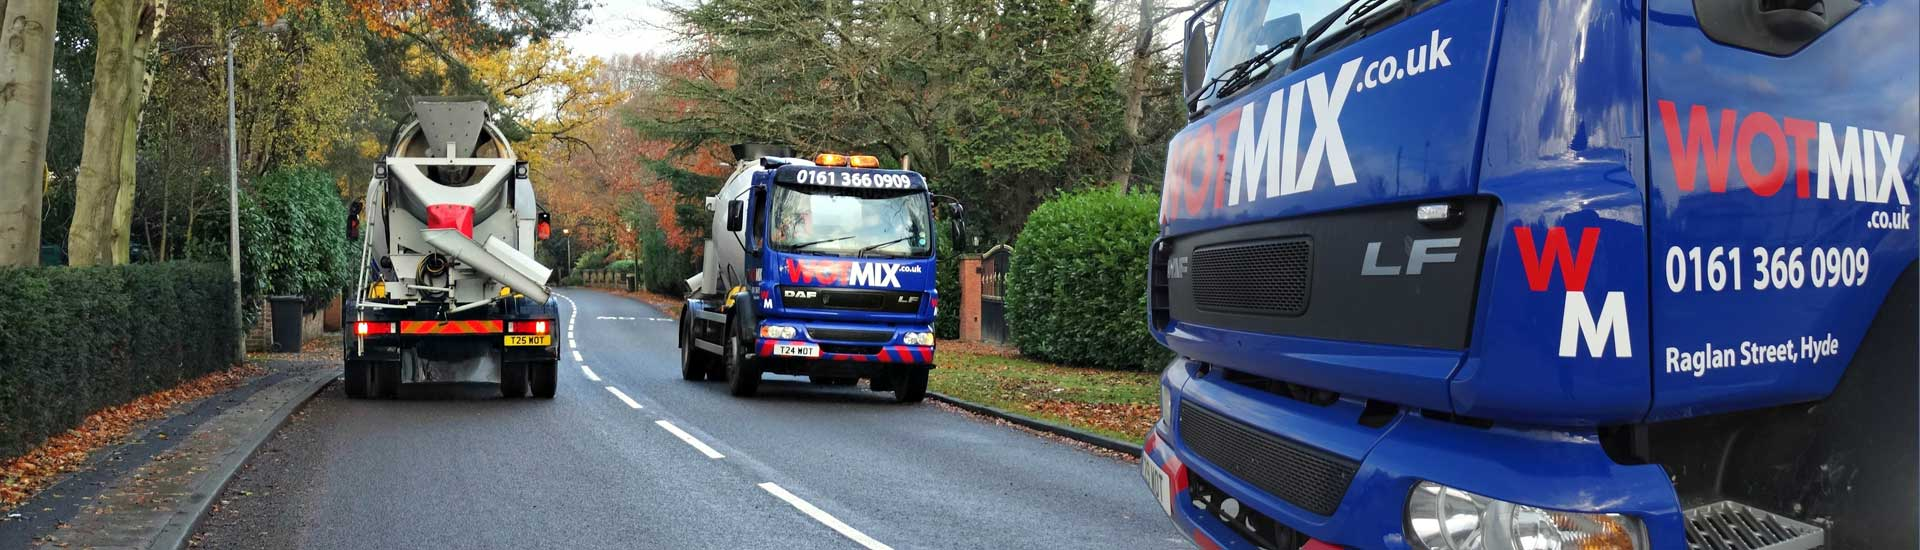 We Deliver Ready Mix Concrete to Wilmslow